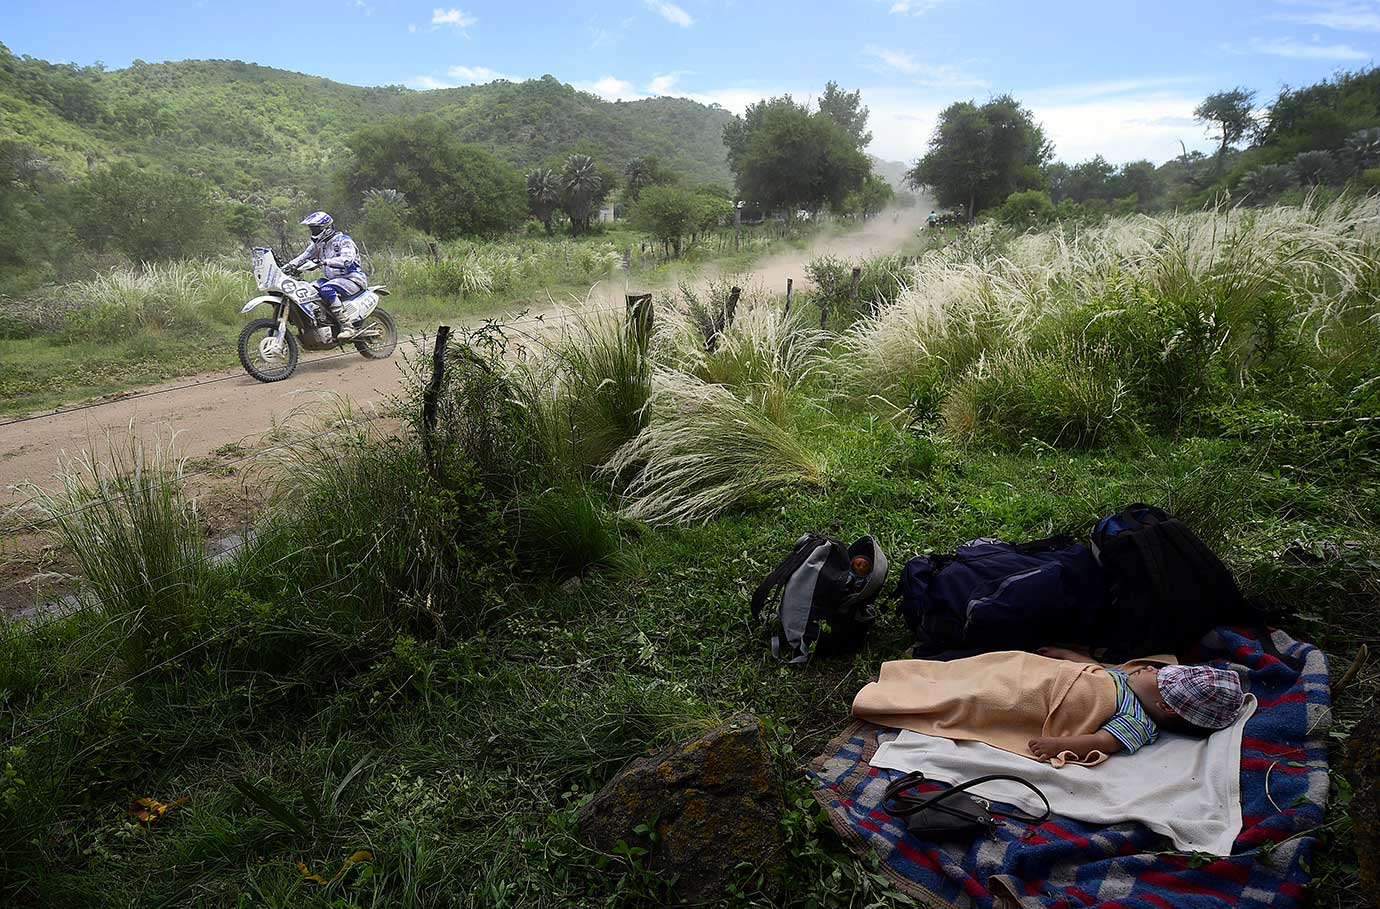 A baby sleeps by the side of a road as a biker competes in the Stage 12 of the Dakar 2016 between San Juan and Villa Carlos Paz in Argentina.